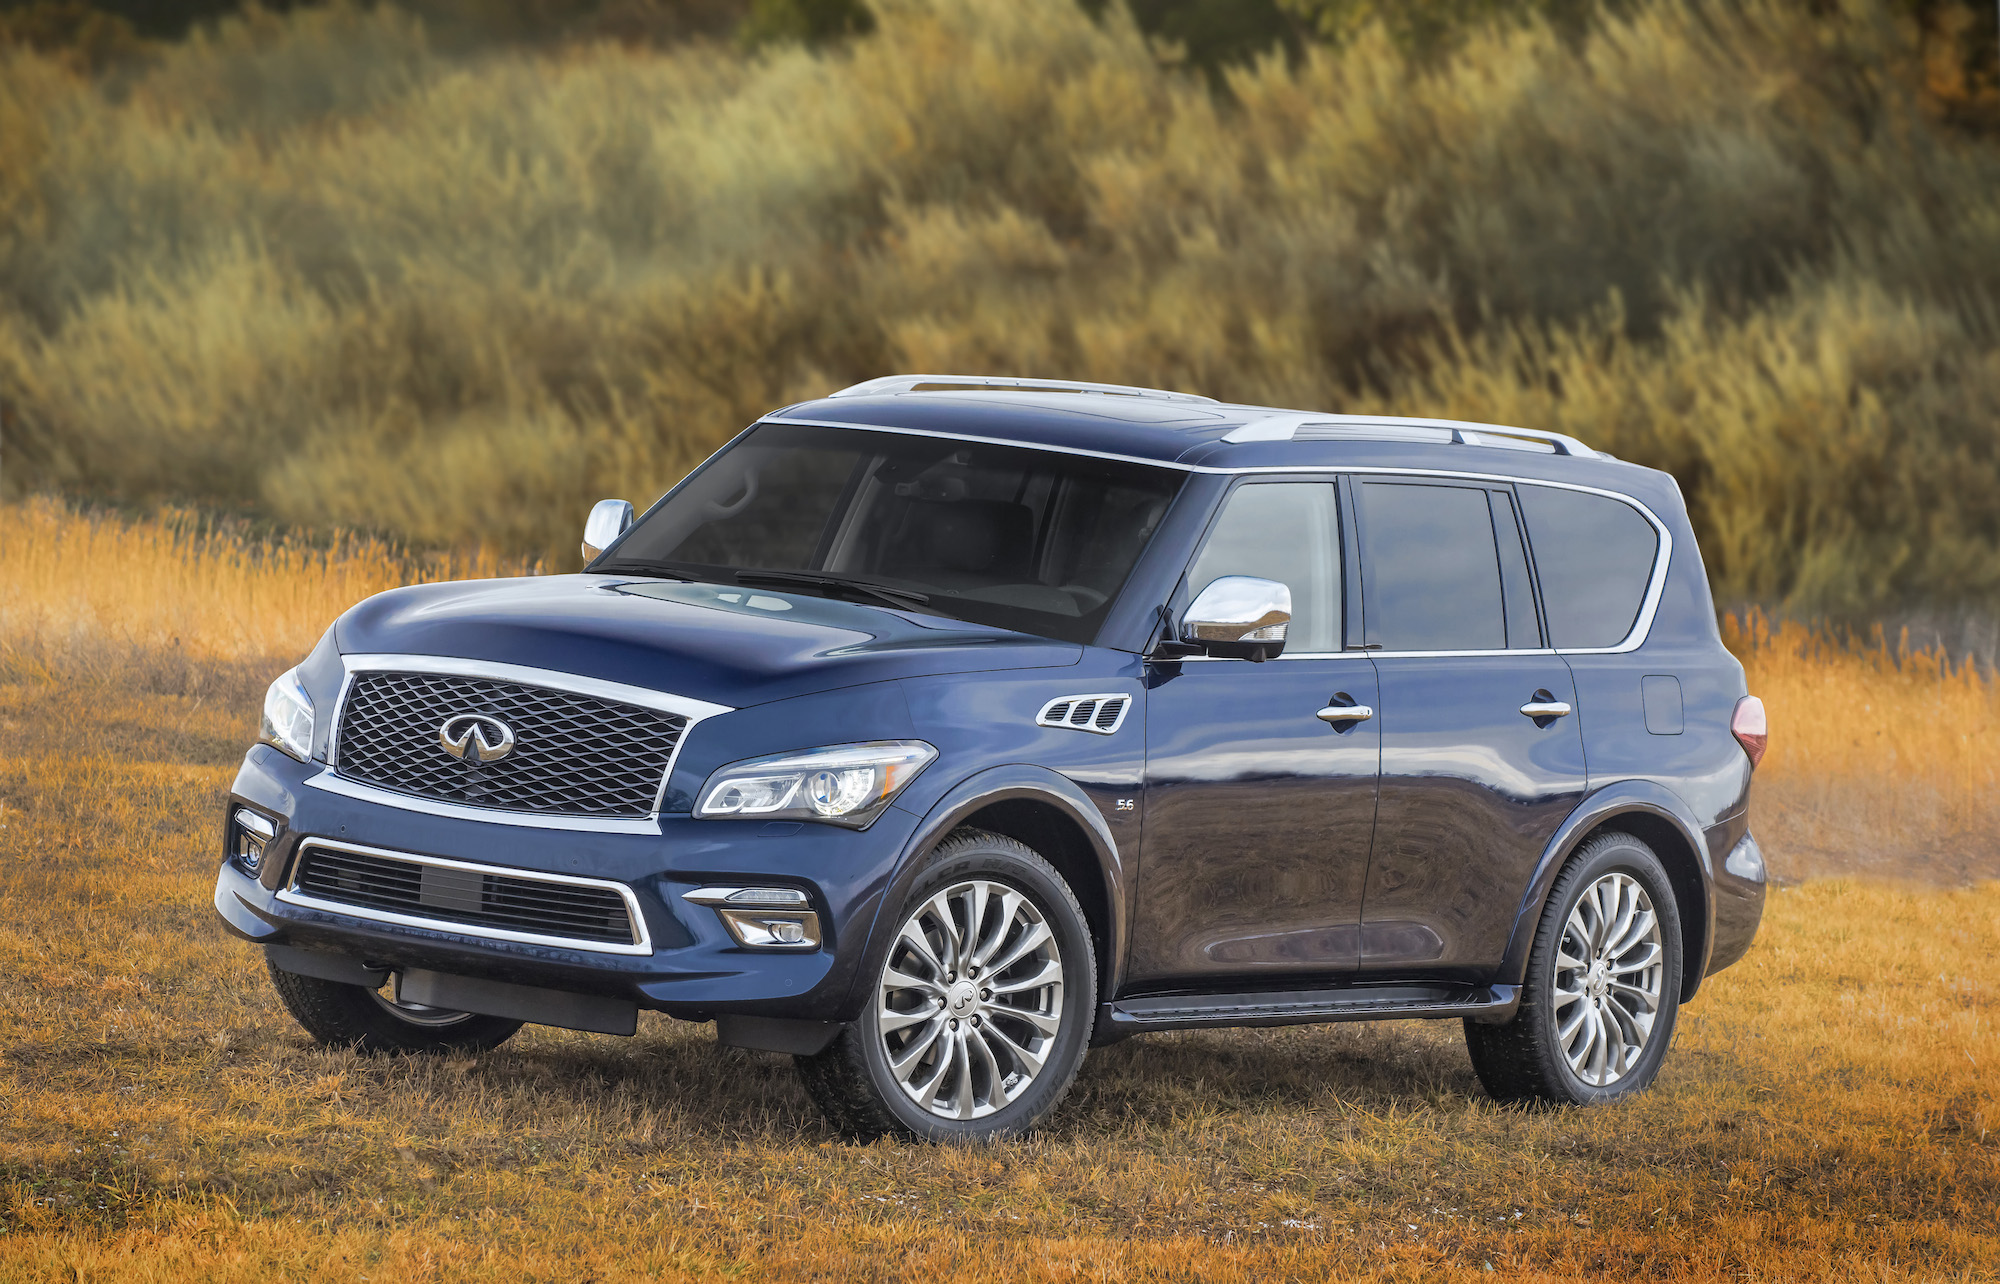 2016 INFINITI QX80 Review, Ratings, Specs, Prices, and Photos - The ...